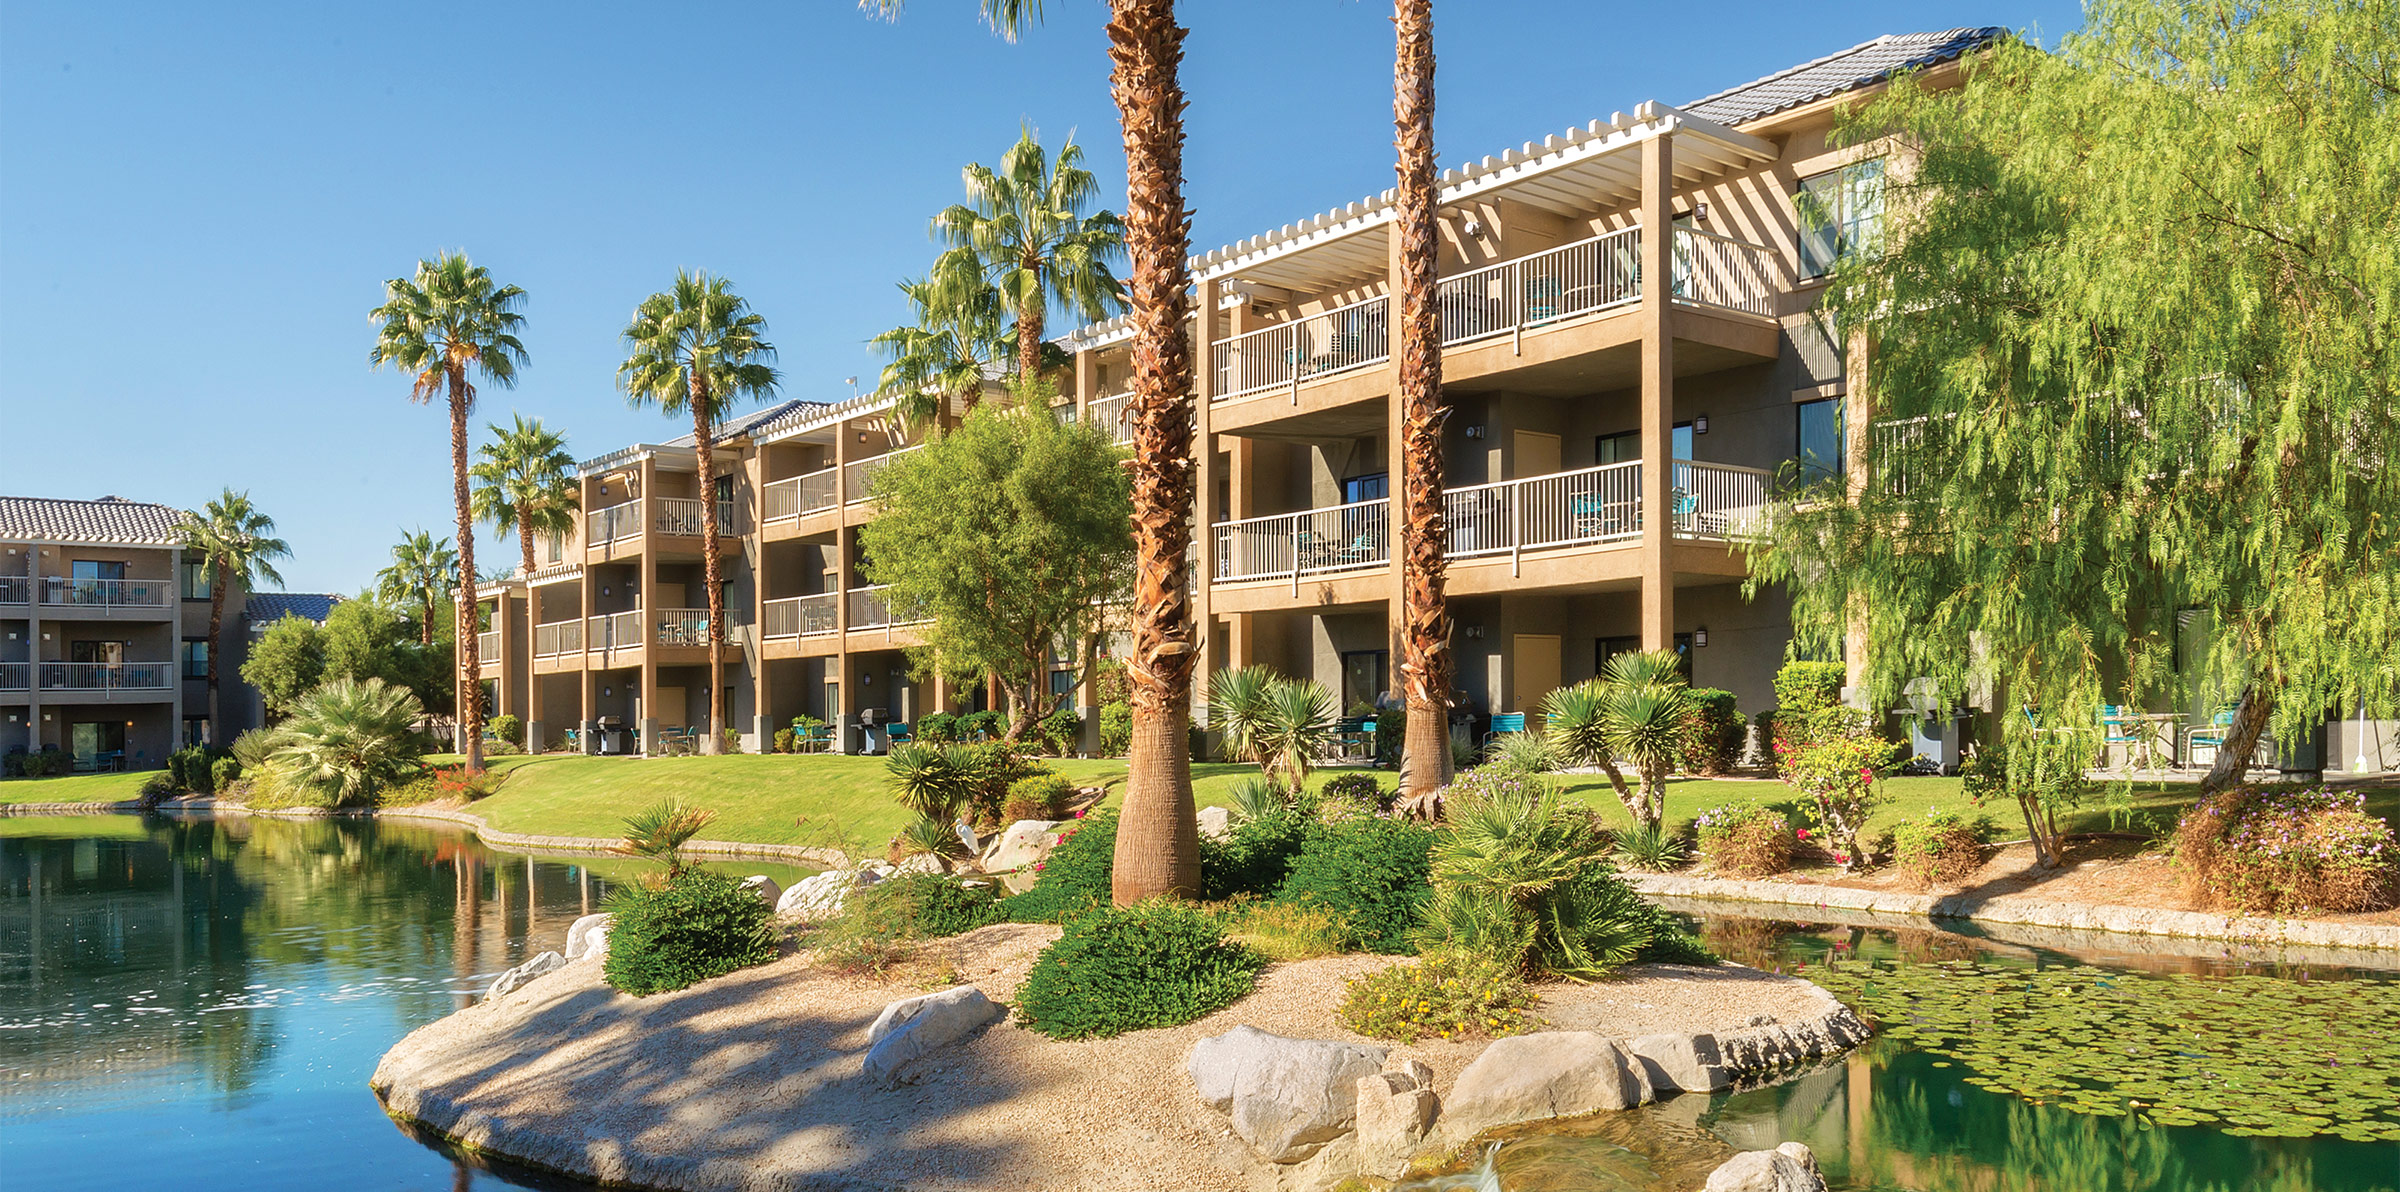 Apartment 3 Bedroom 2 Bath In Indio  CA   Palm Springs  5 miles from COACHELLA photo 20365753